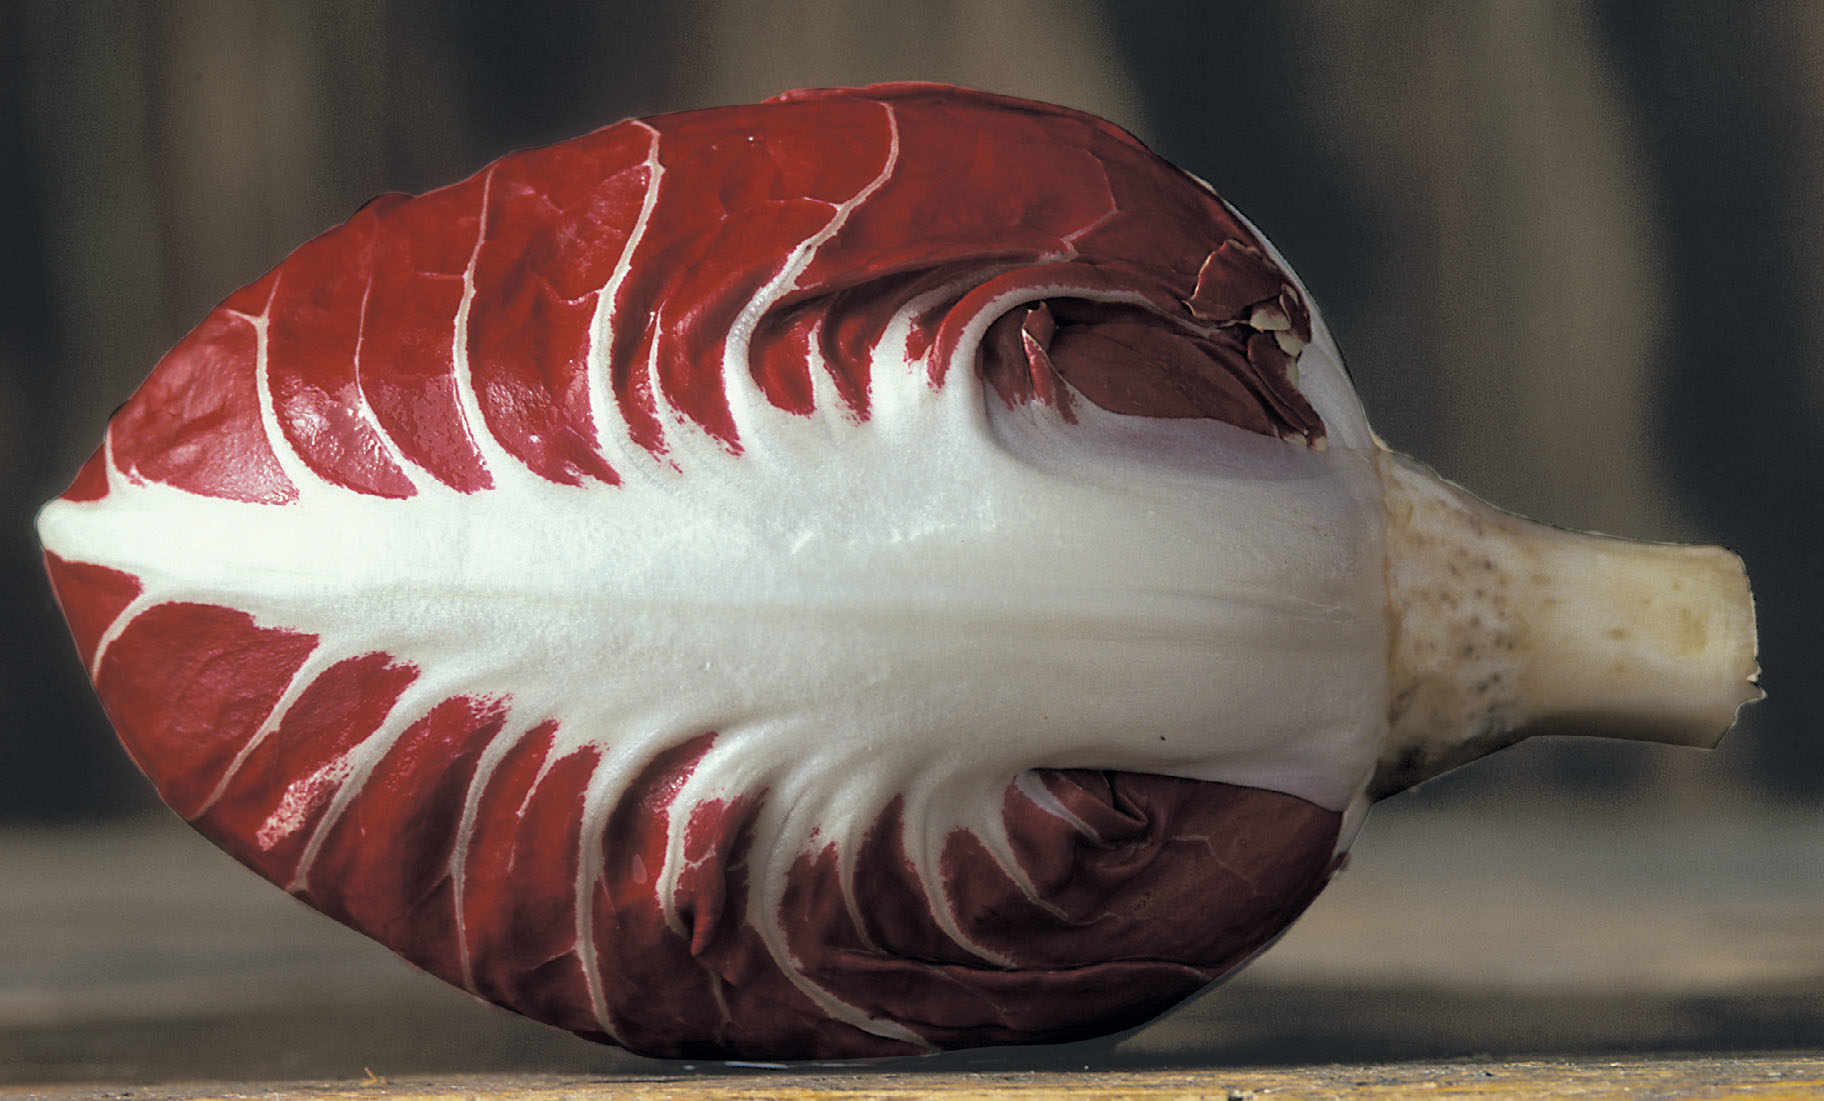 Radicchio of Verona, A Red Gem